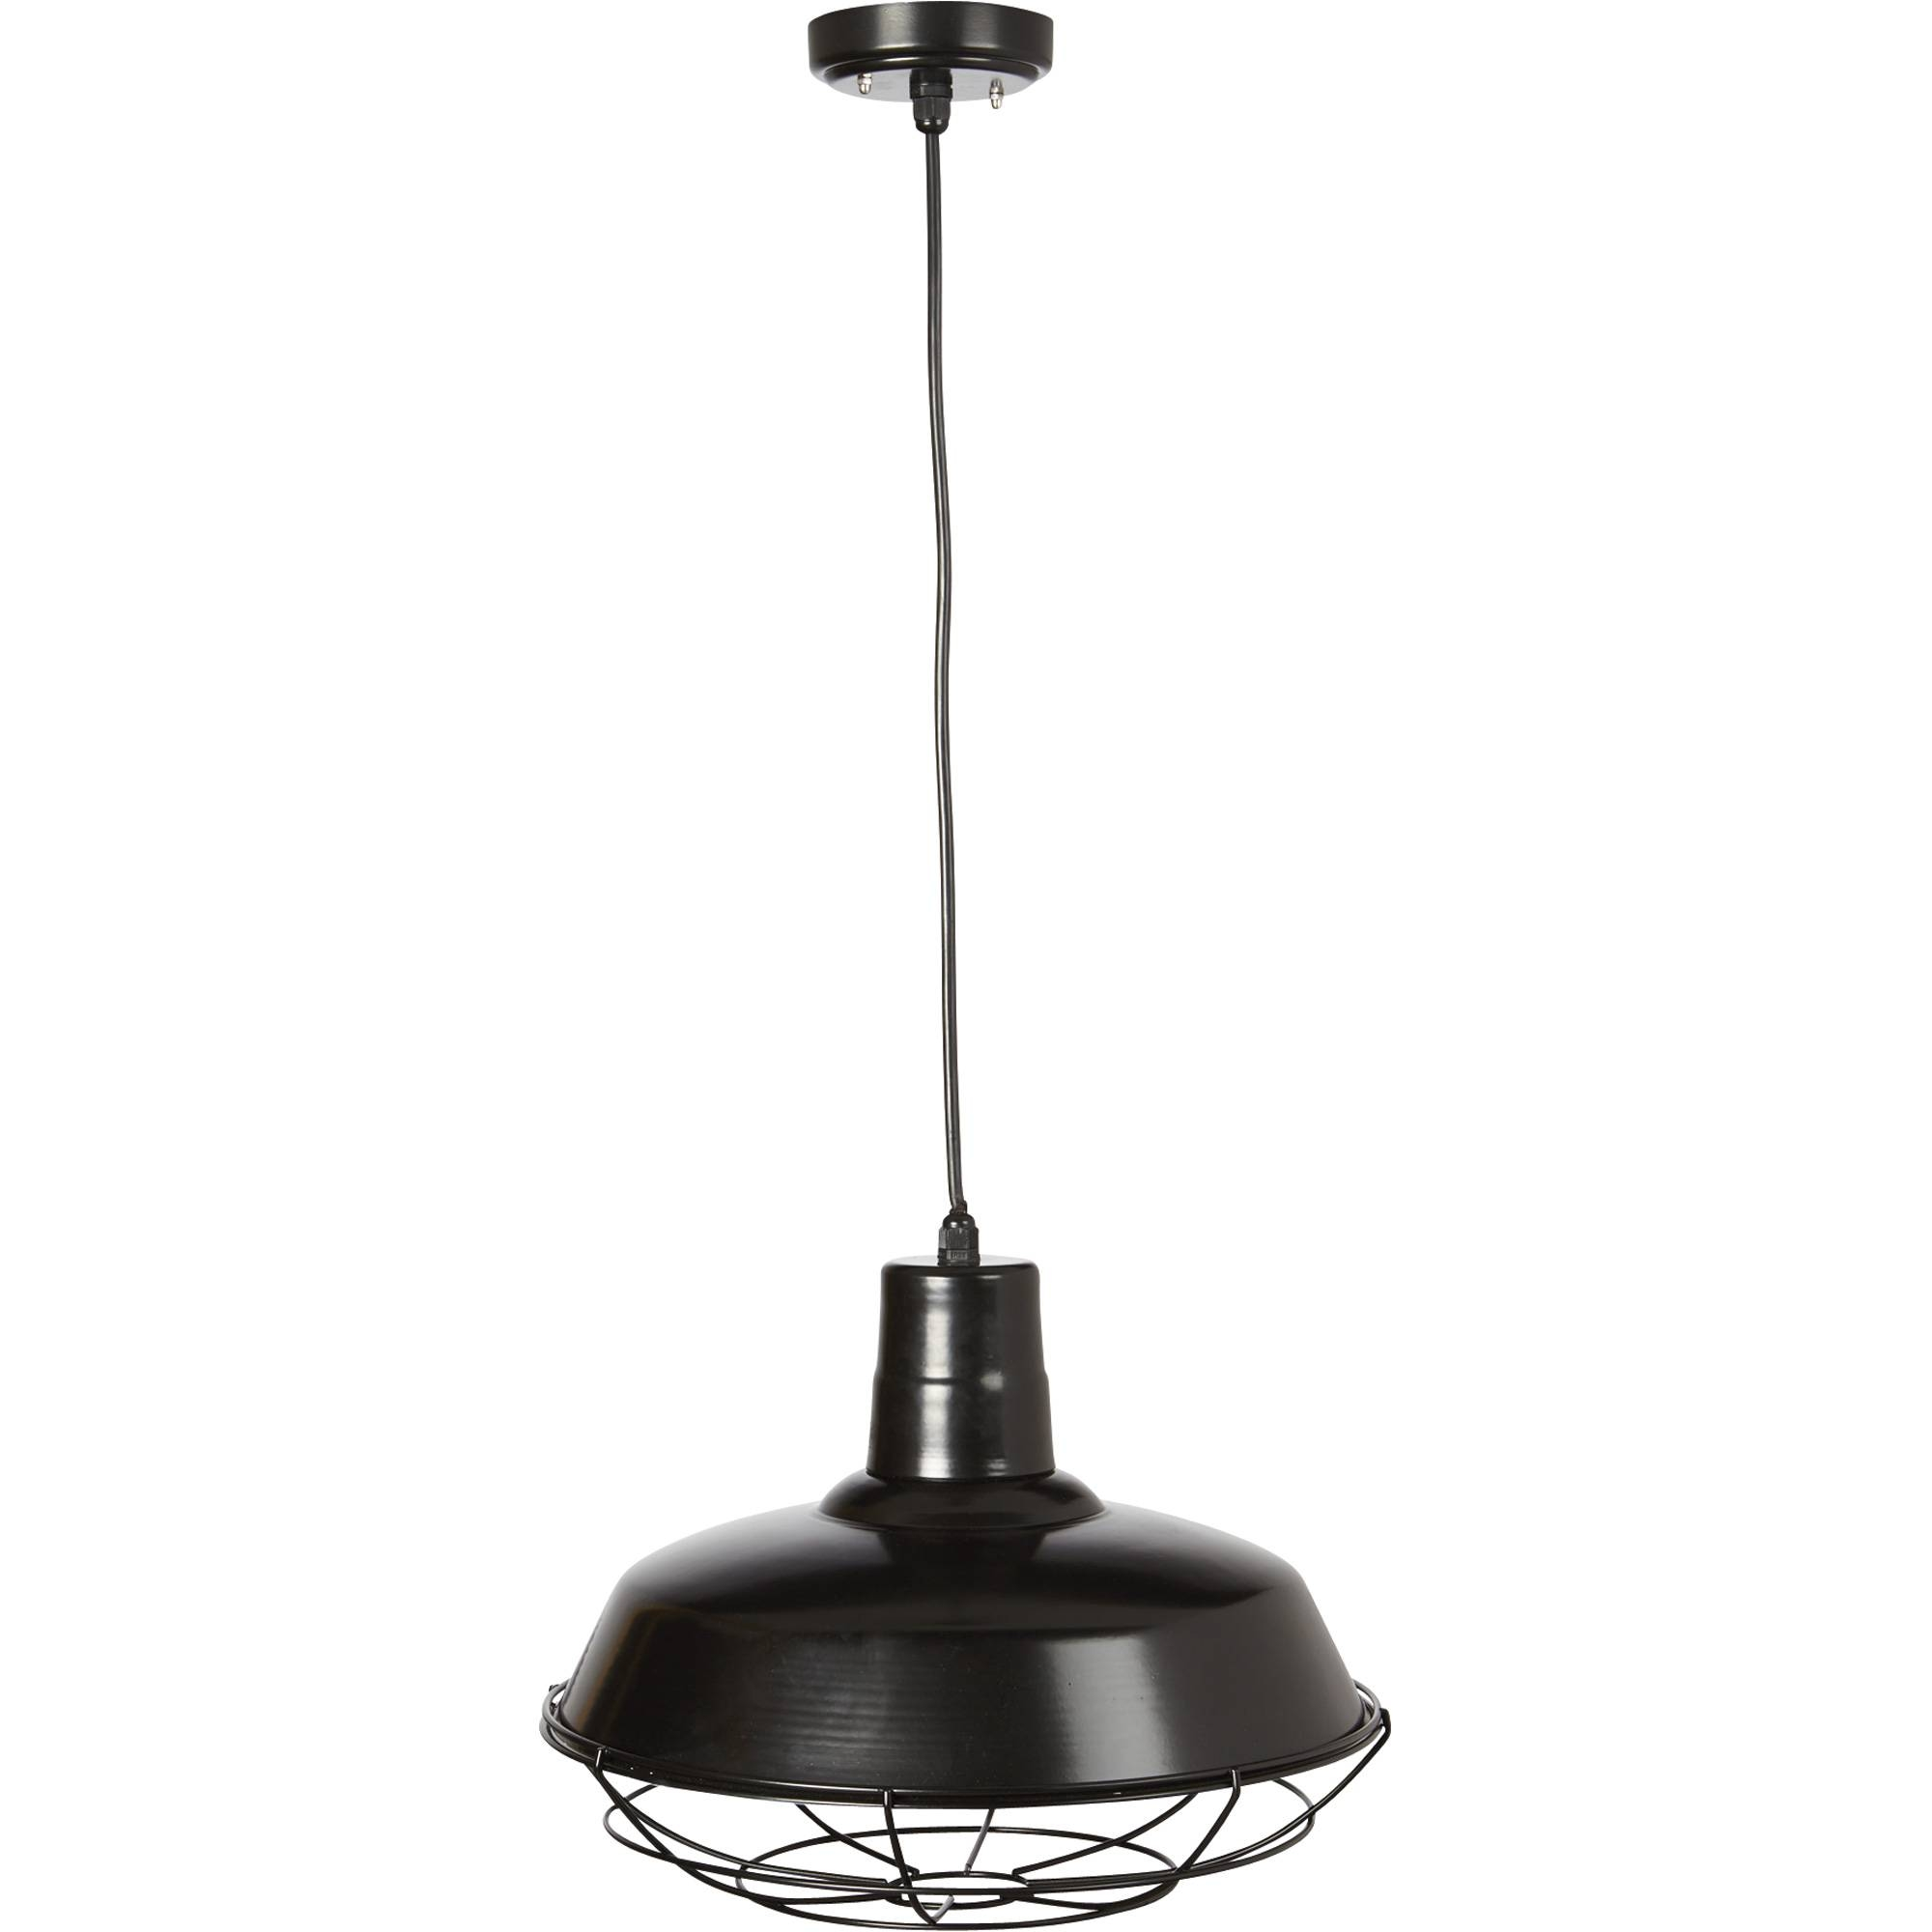 Fancy Barn Pendant Light 78 For Your Star Pendant Lighting With Throughout Barn Pendant Lights (View 14 of 15)